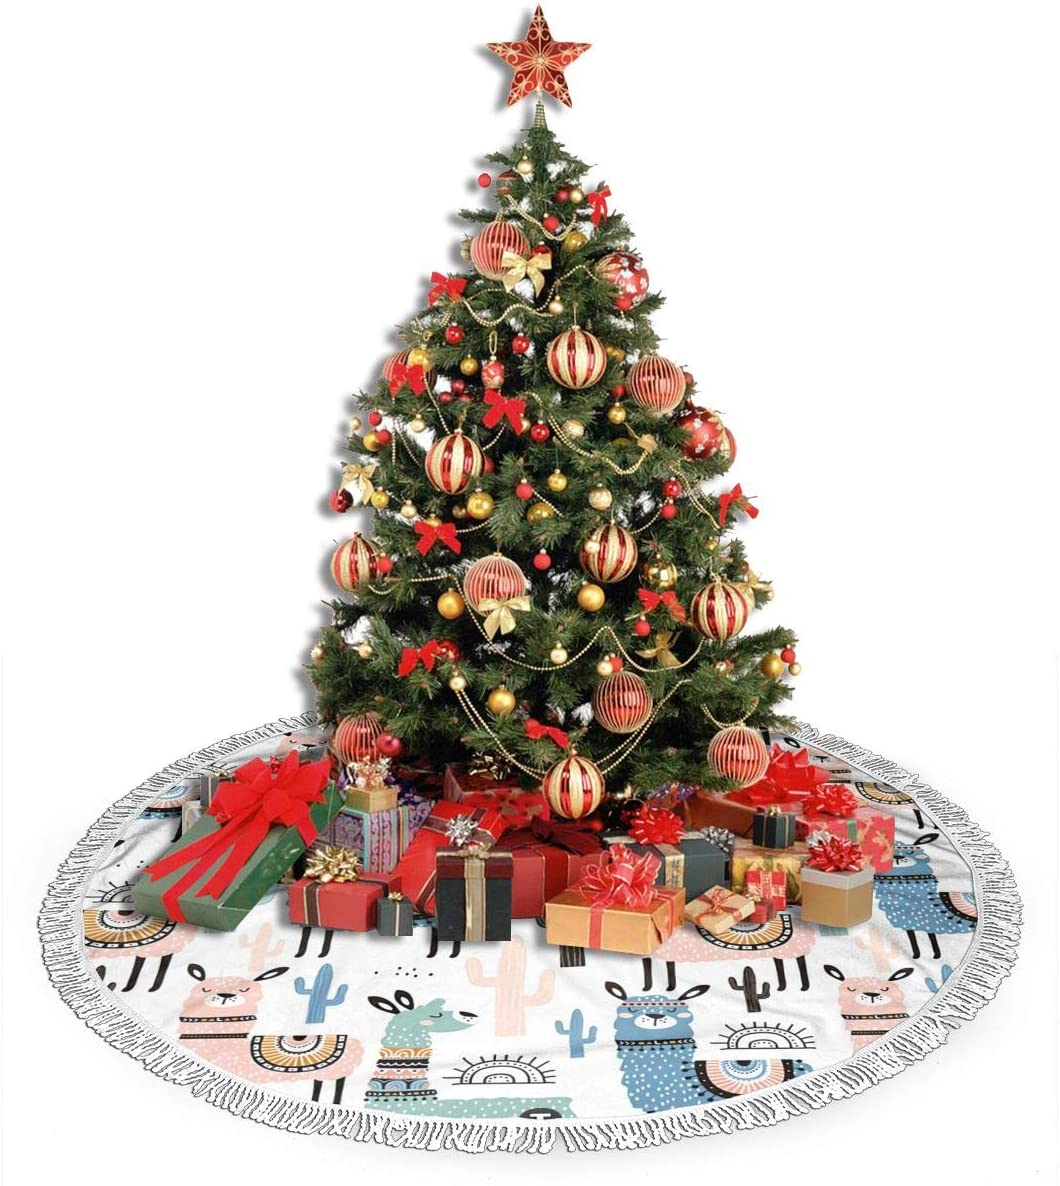 ULQUIEOR Llama Cactus Christmas Tree Skirt Funny Xmas Holiday Party Decorations Large Tree Mat 48 Inch